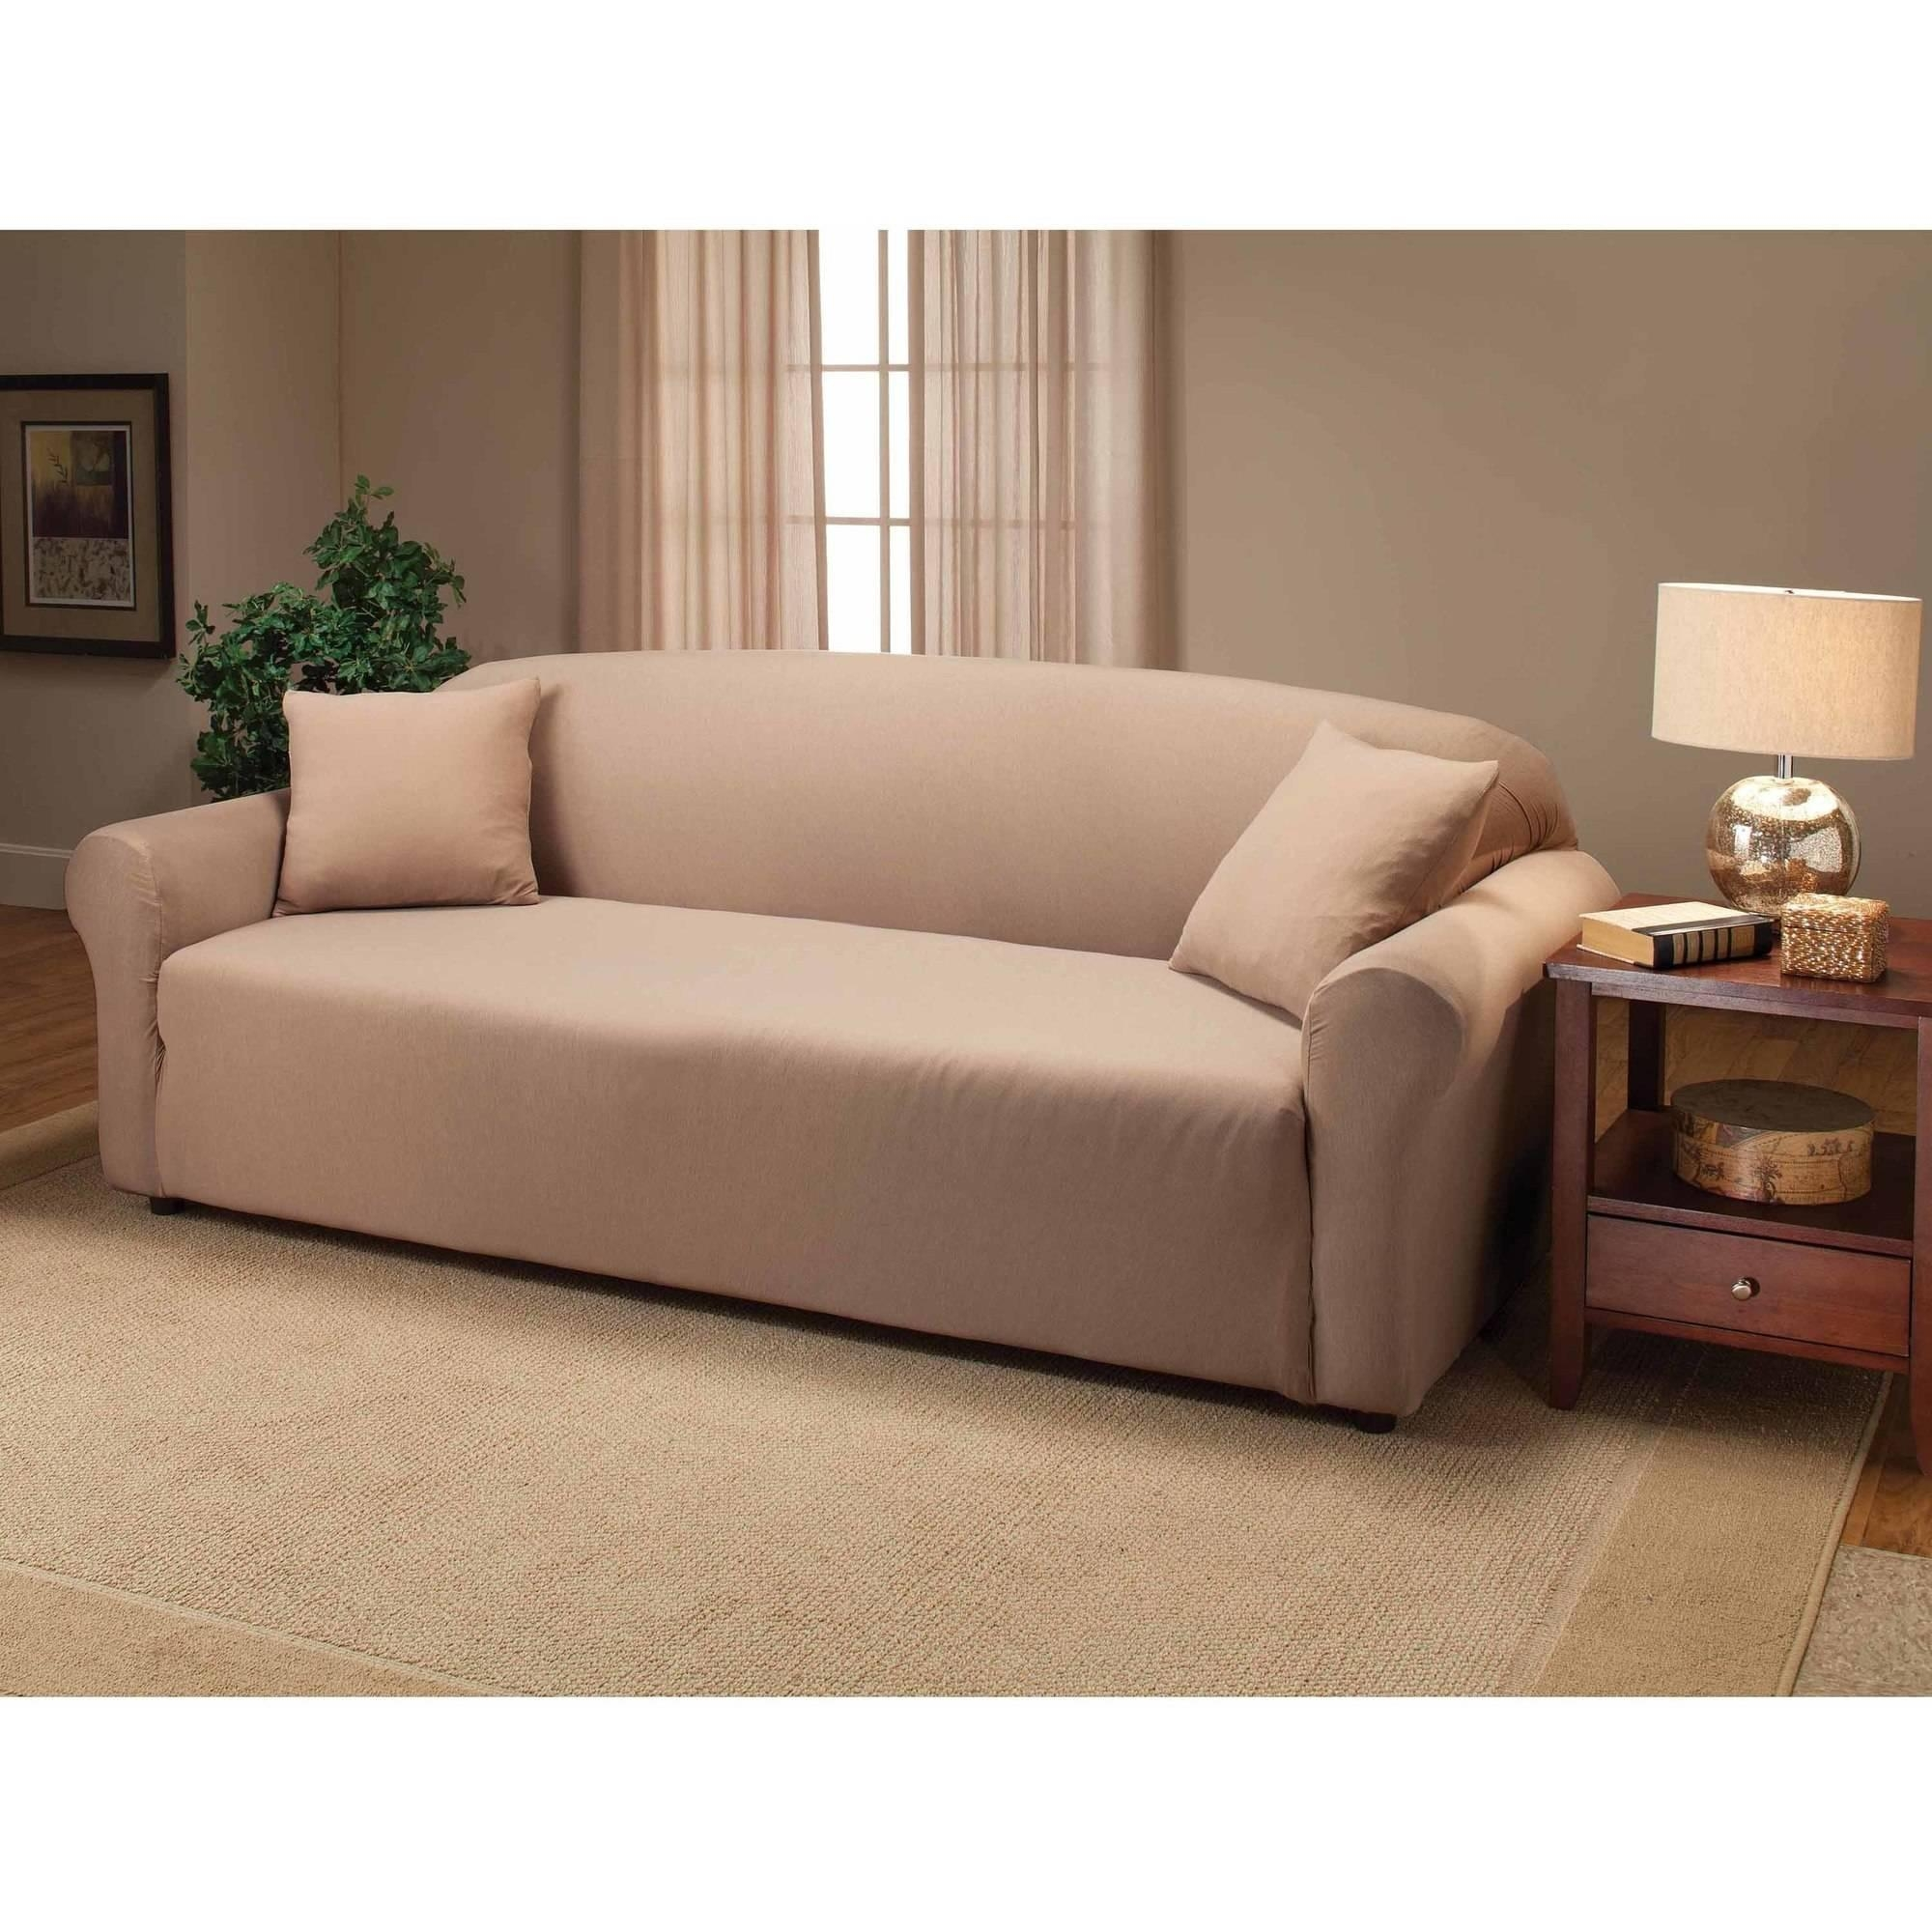 Sofas : Awesome Couch Arm Covers Sectional Couch Covers Extra For Large Sofa Slipcovers (View 9 of 23)